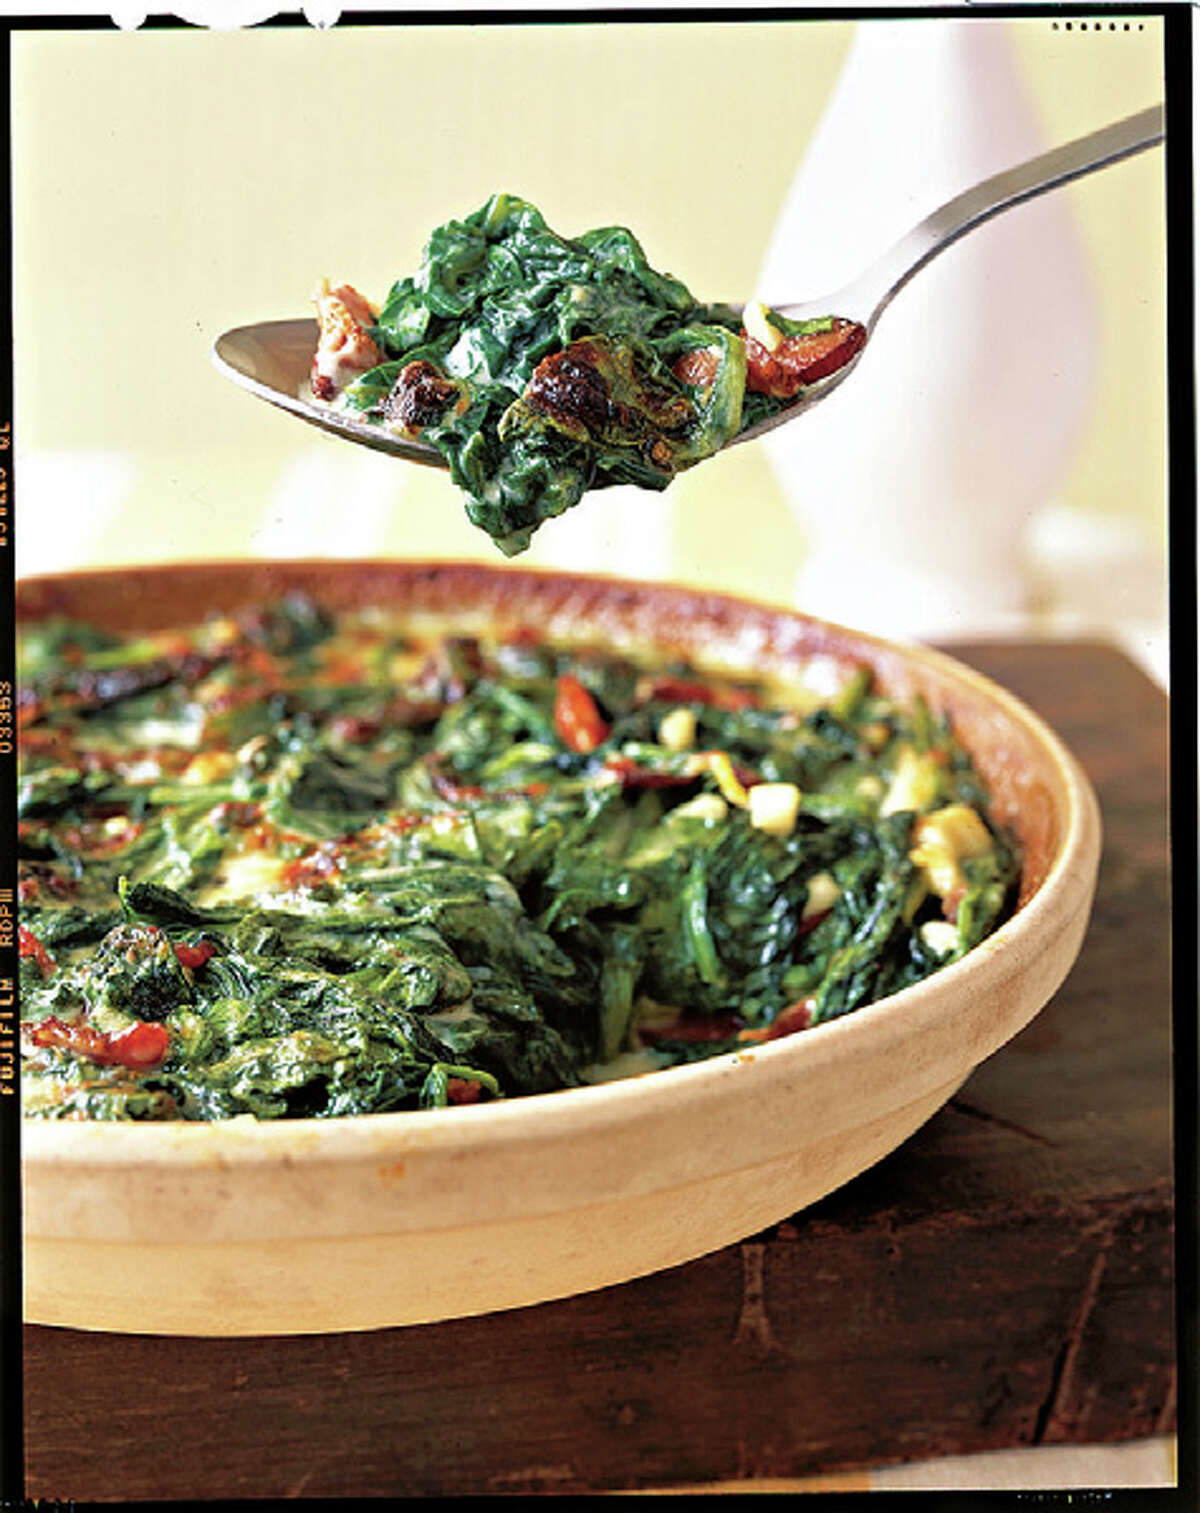 Country Living recipe for Creamy Spinach Casserole.